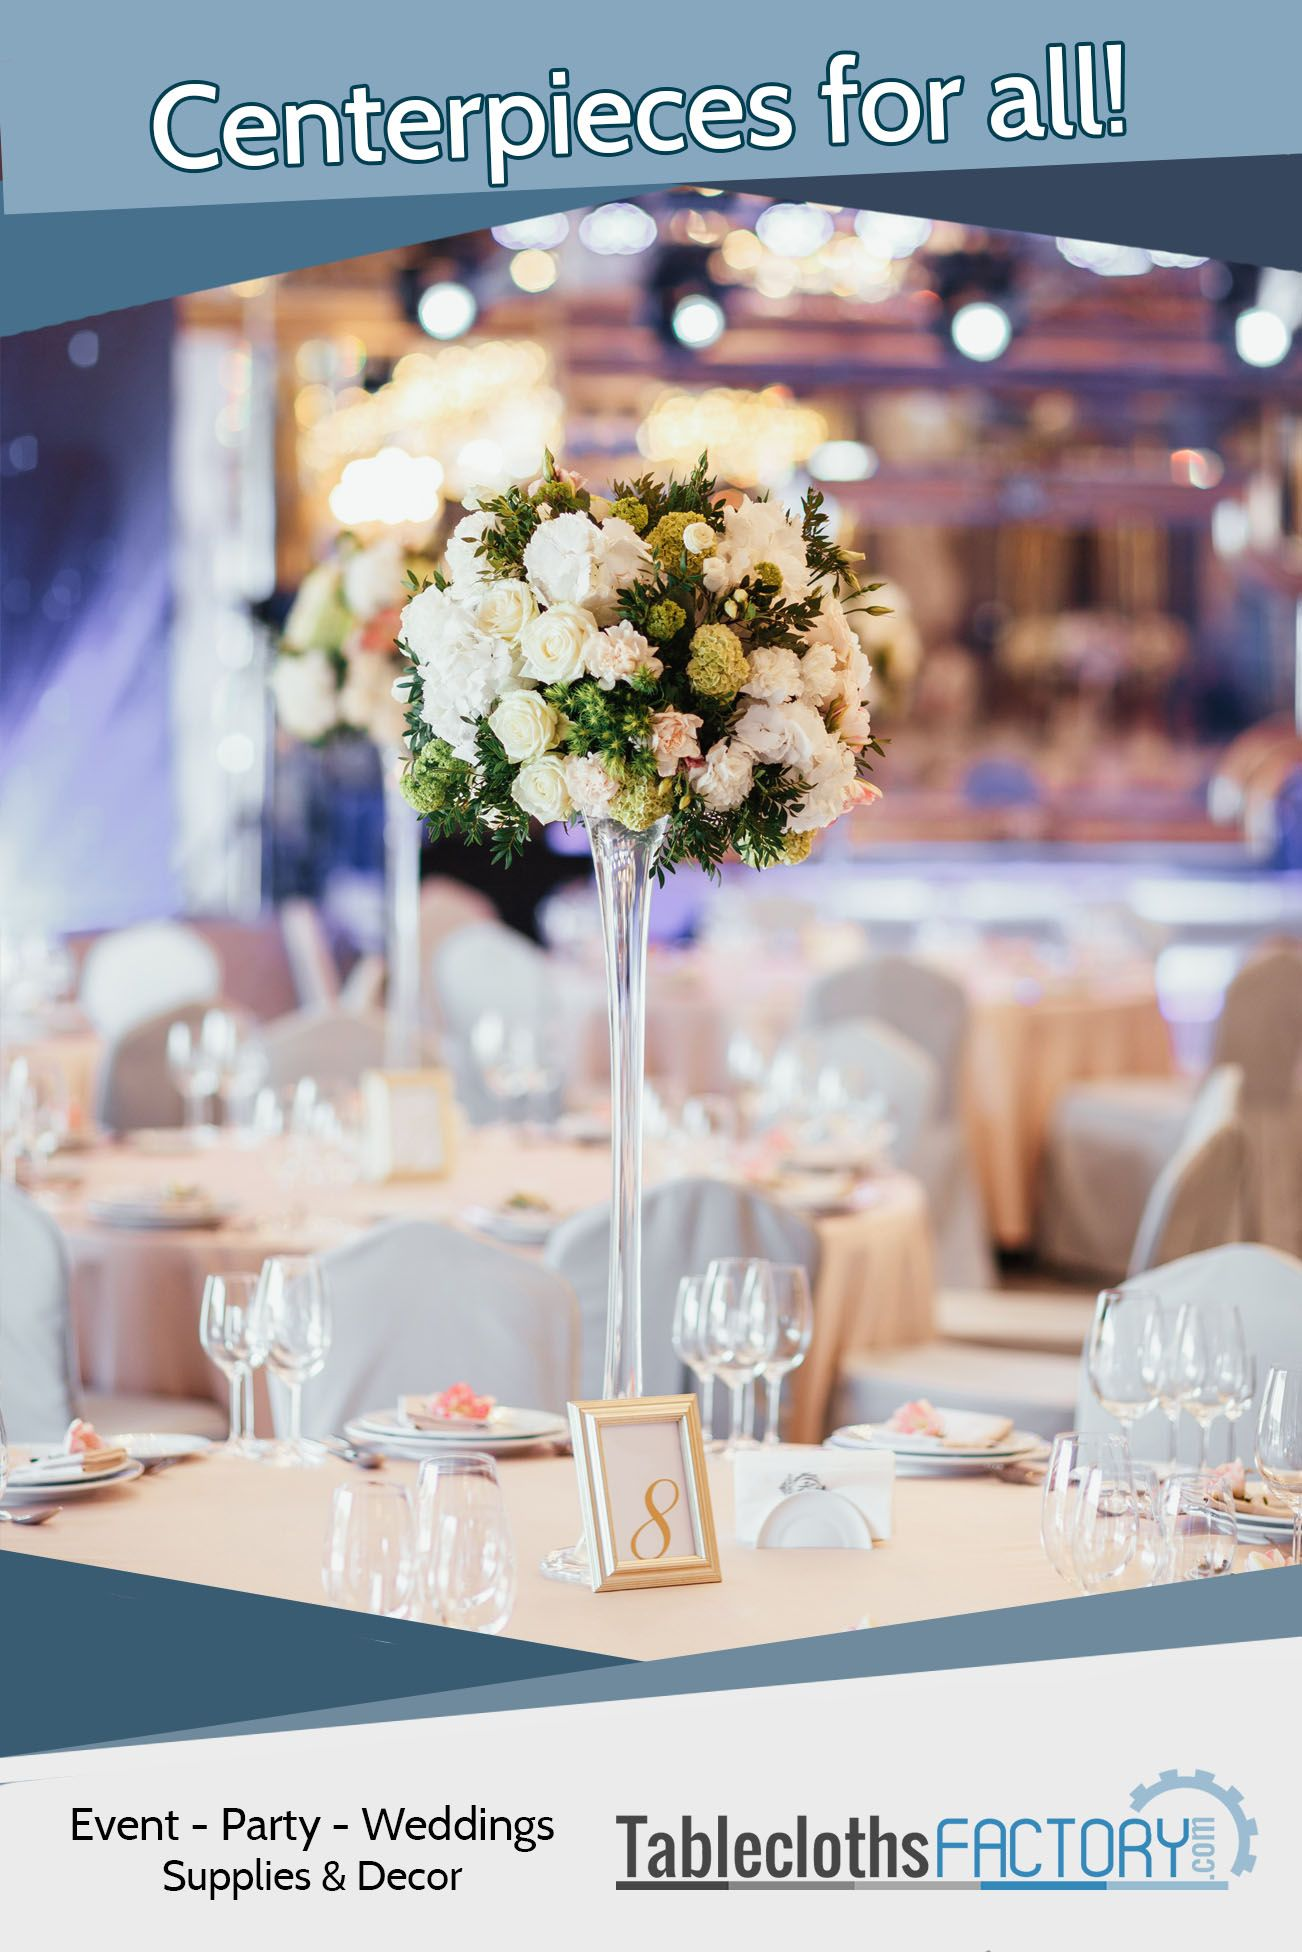 Tableclothsfactory Has Gorgeous Centerpieces For All Occasions Backdrop Decorations Coral Wedding Decorations Wholesale Flowers Wedding